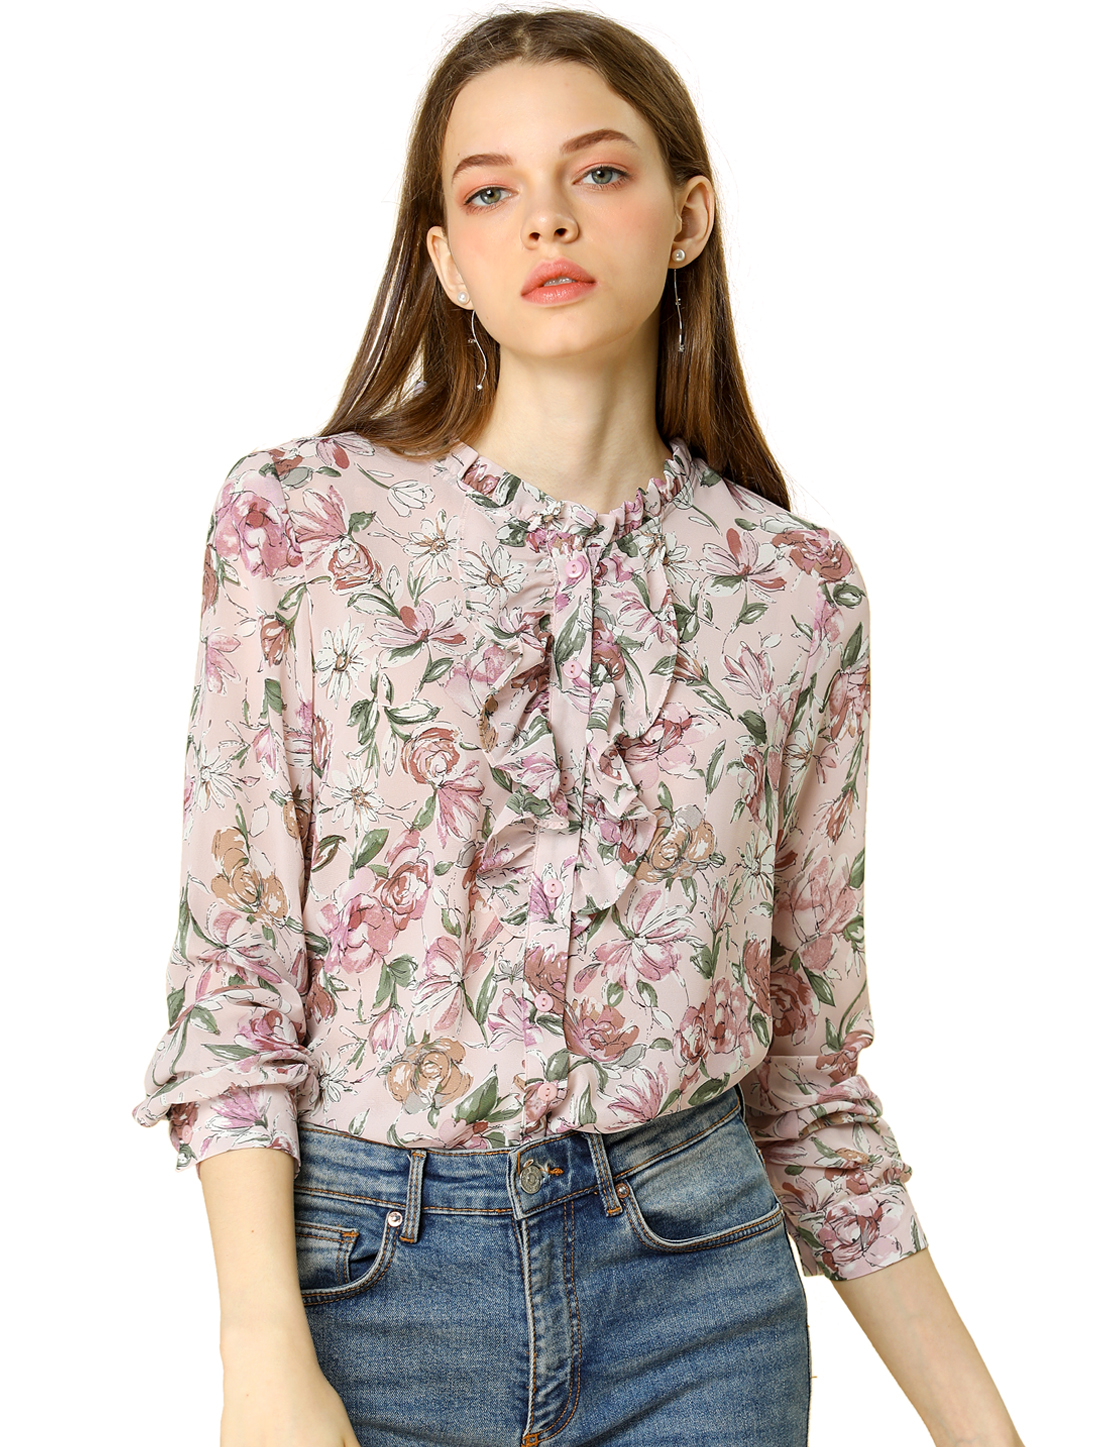 Women's Long Sleeve Ruffle Collar Button Down Floral Shirt Pink L (US 14)